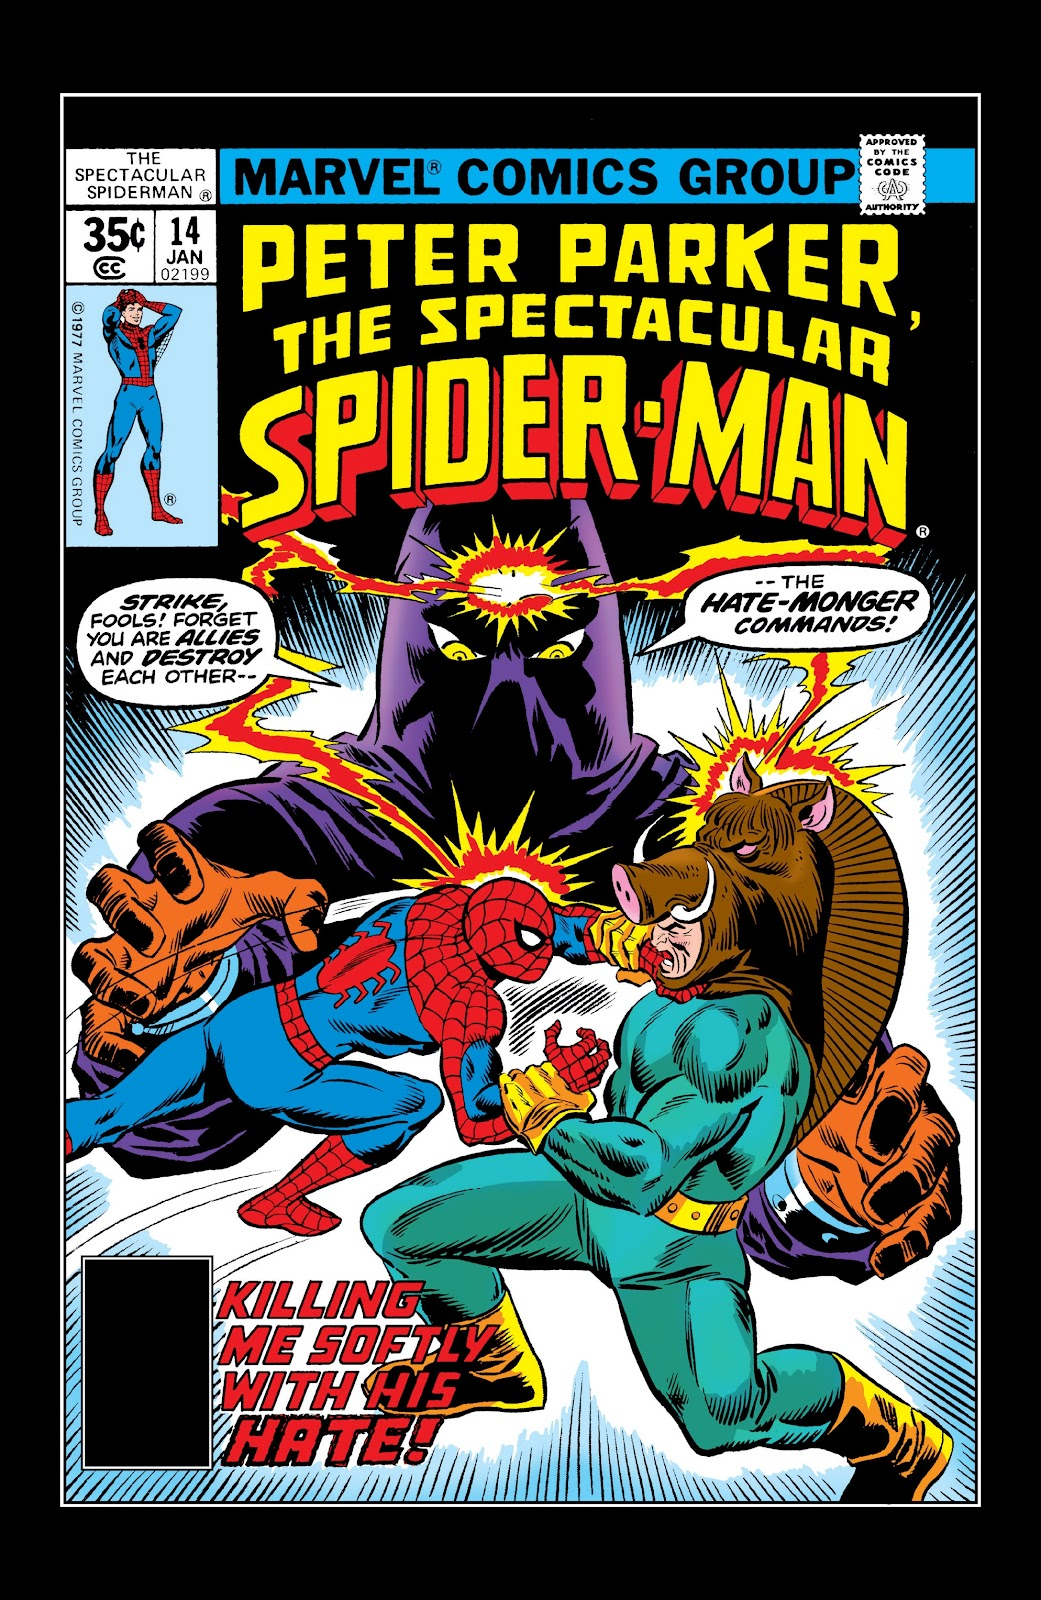 Read online Marvel Masterworks: The Spectacular Spider-Man comic -  Issue # TPB (Part 3) - 28